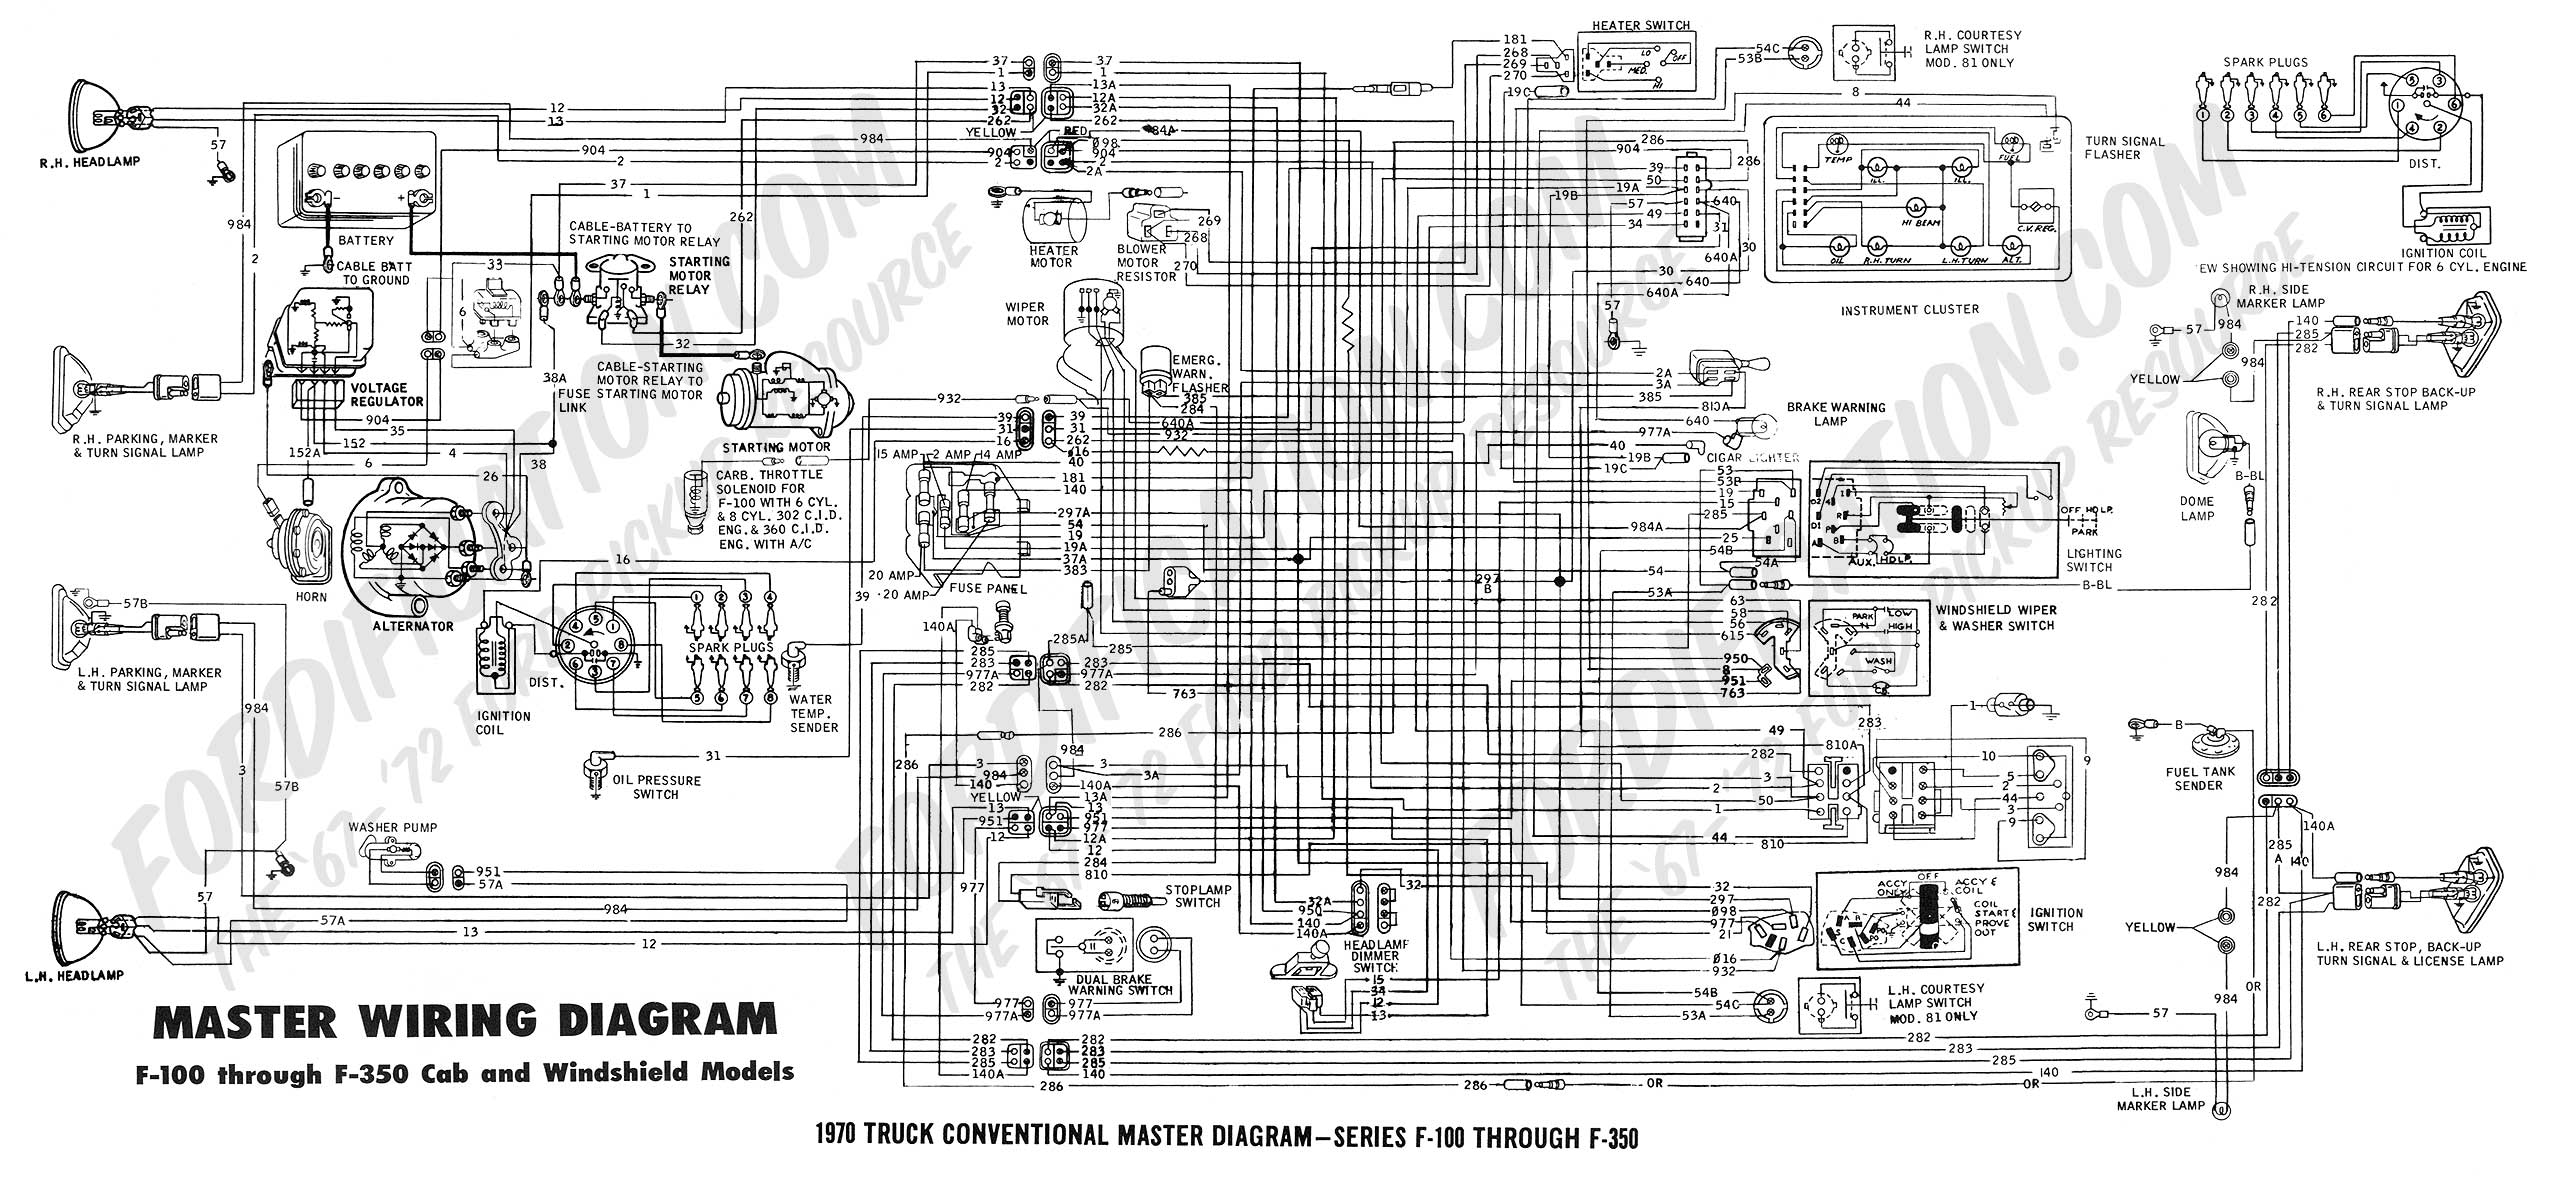 Full Size Chevy Headlight And Alternator Conversion Wiring Harness V8 1961 further 1965 Ford Vin Number Location likewise 1958 Ranchero Wiring Diagram additionally How to in addition Wiring. on 1958 thunderbird wiring diagram